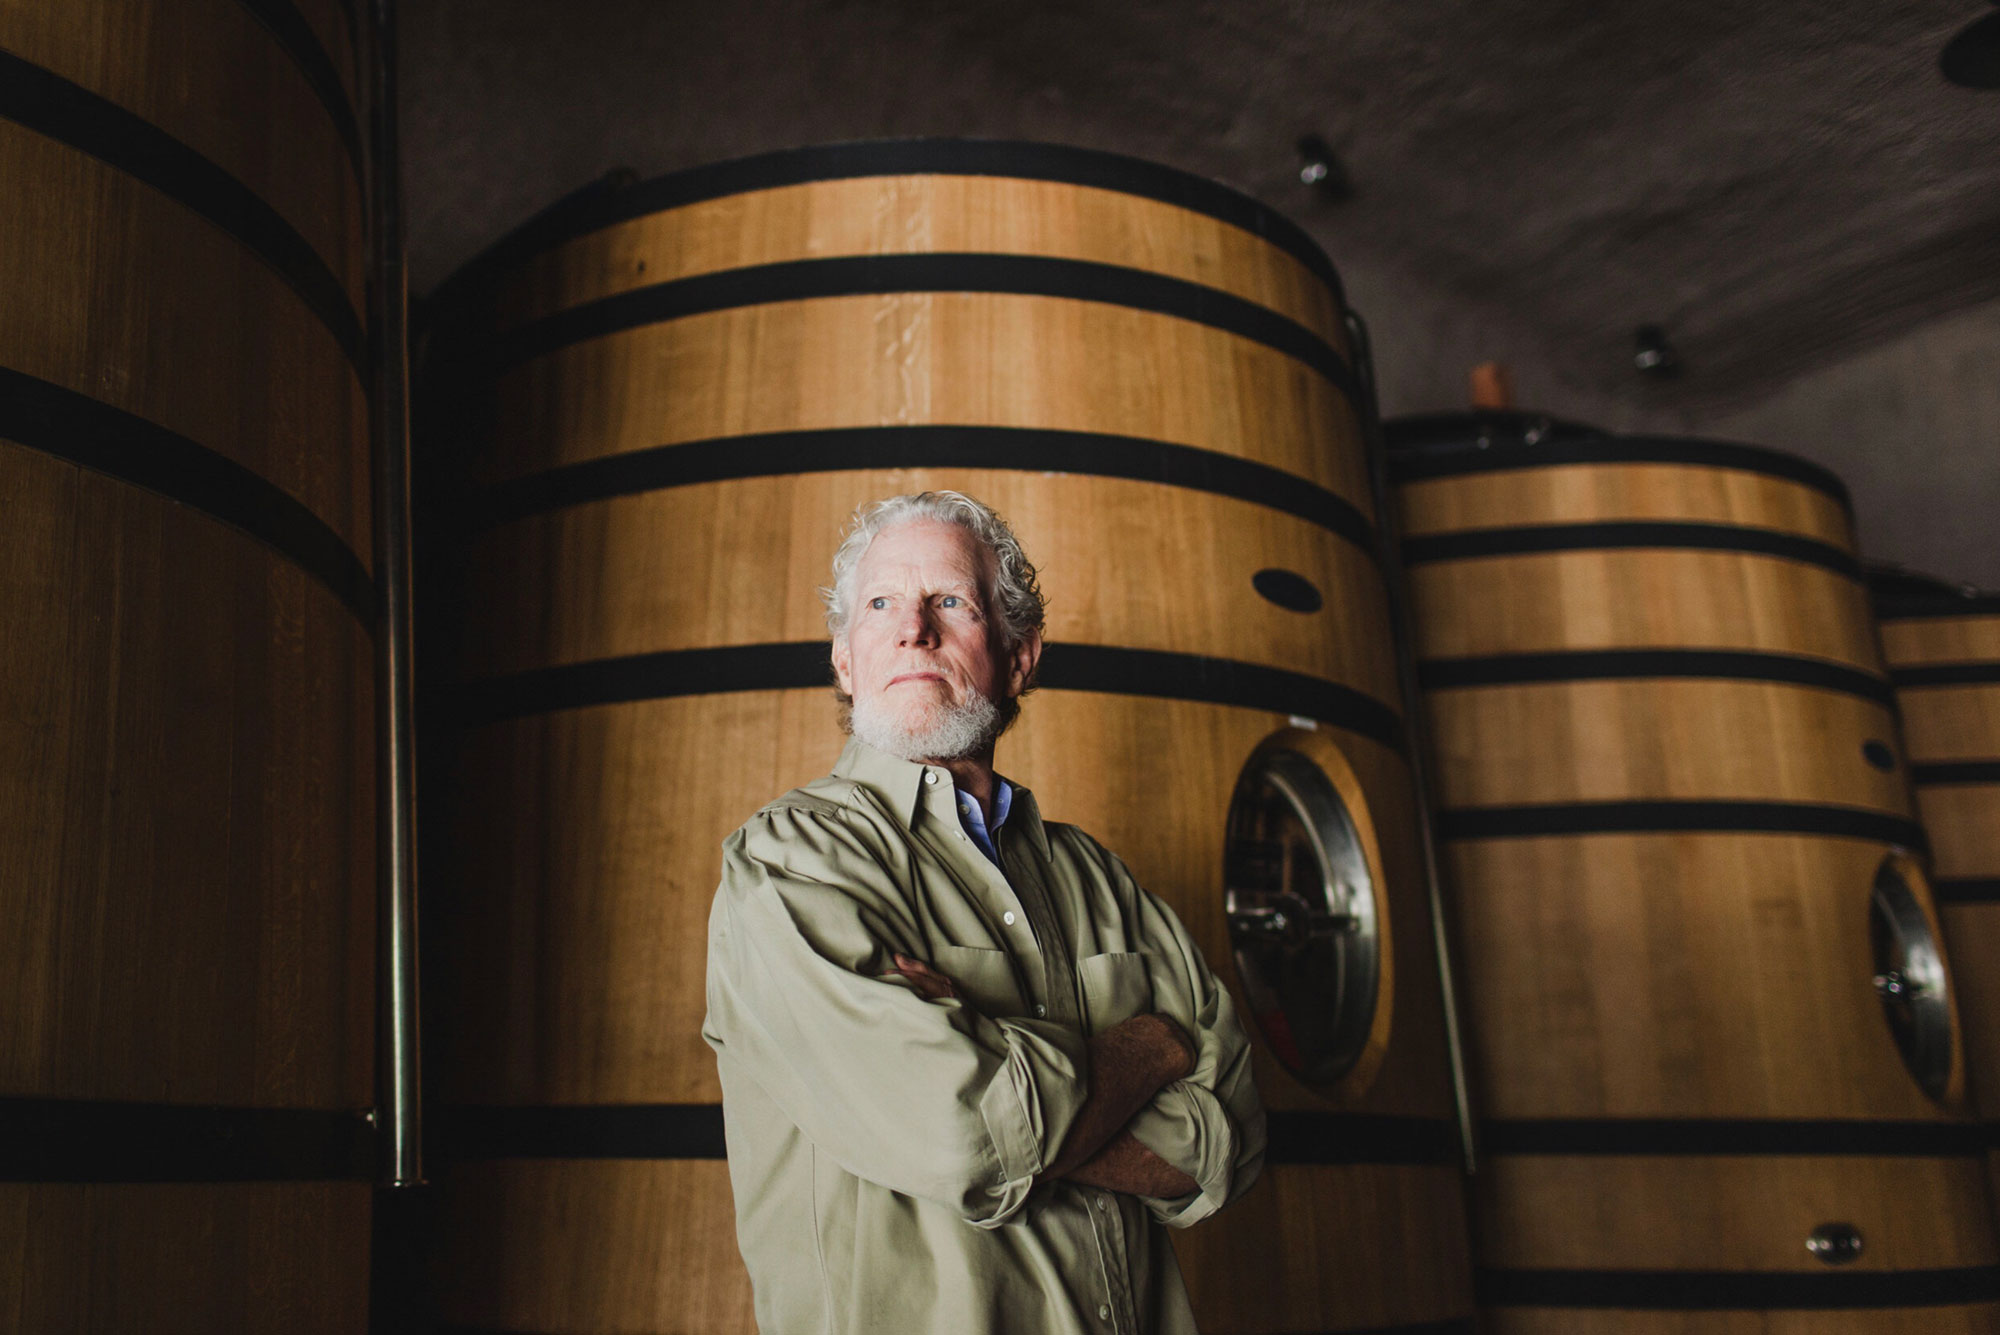 Winemaker with wooden wine tanks